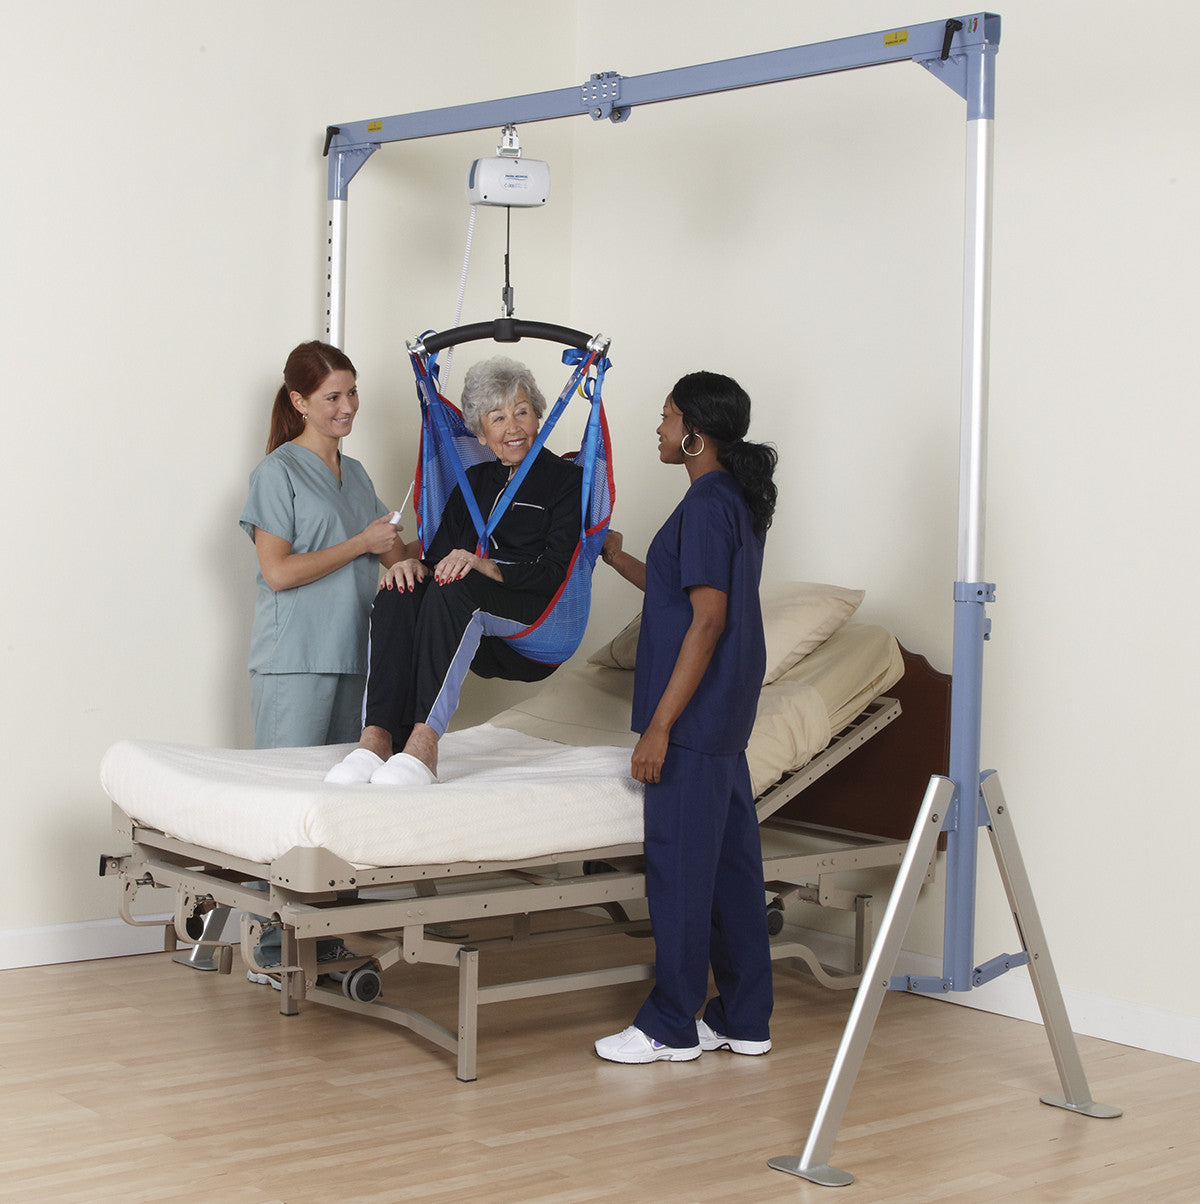 smsender tulum patient lift overhead co ceiling systems ceilings